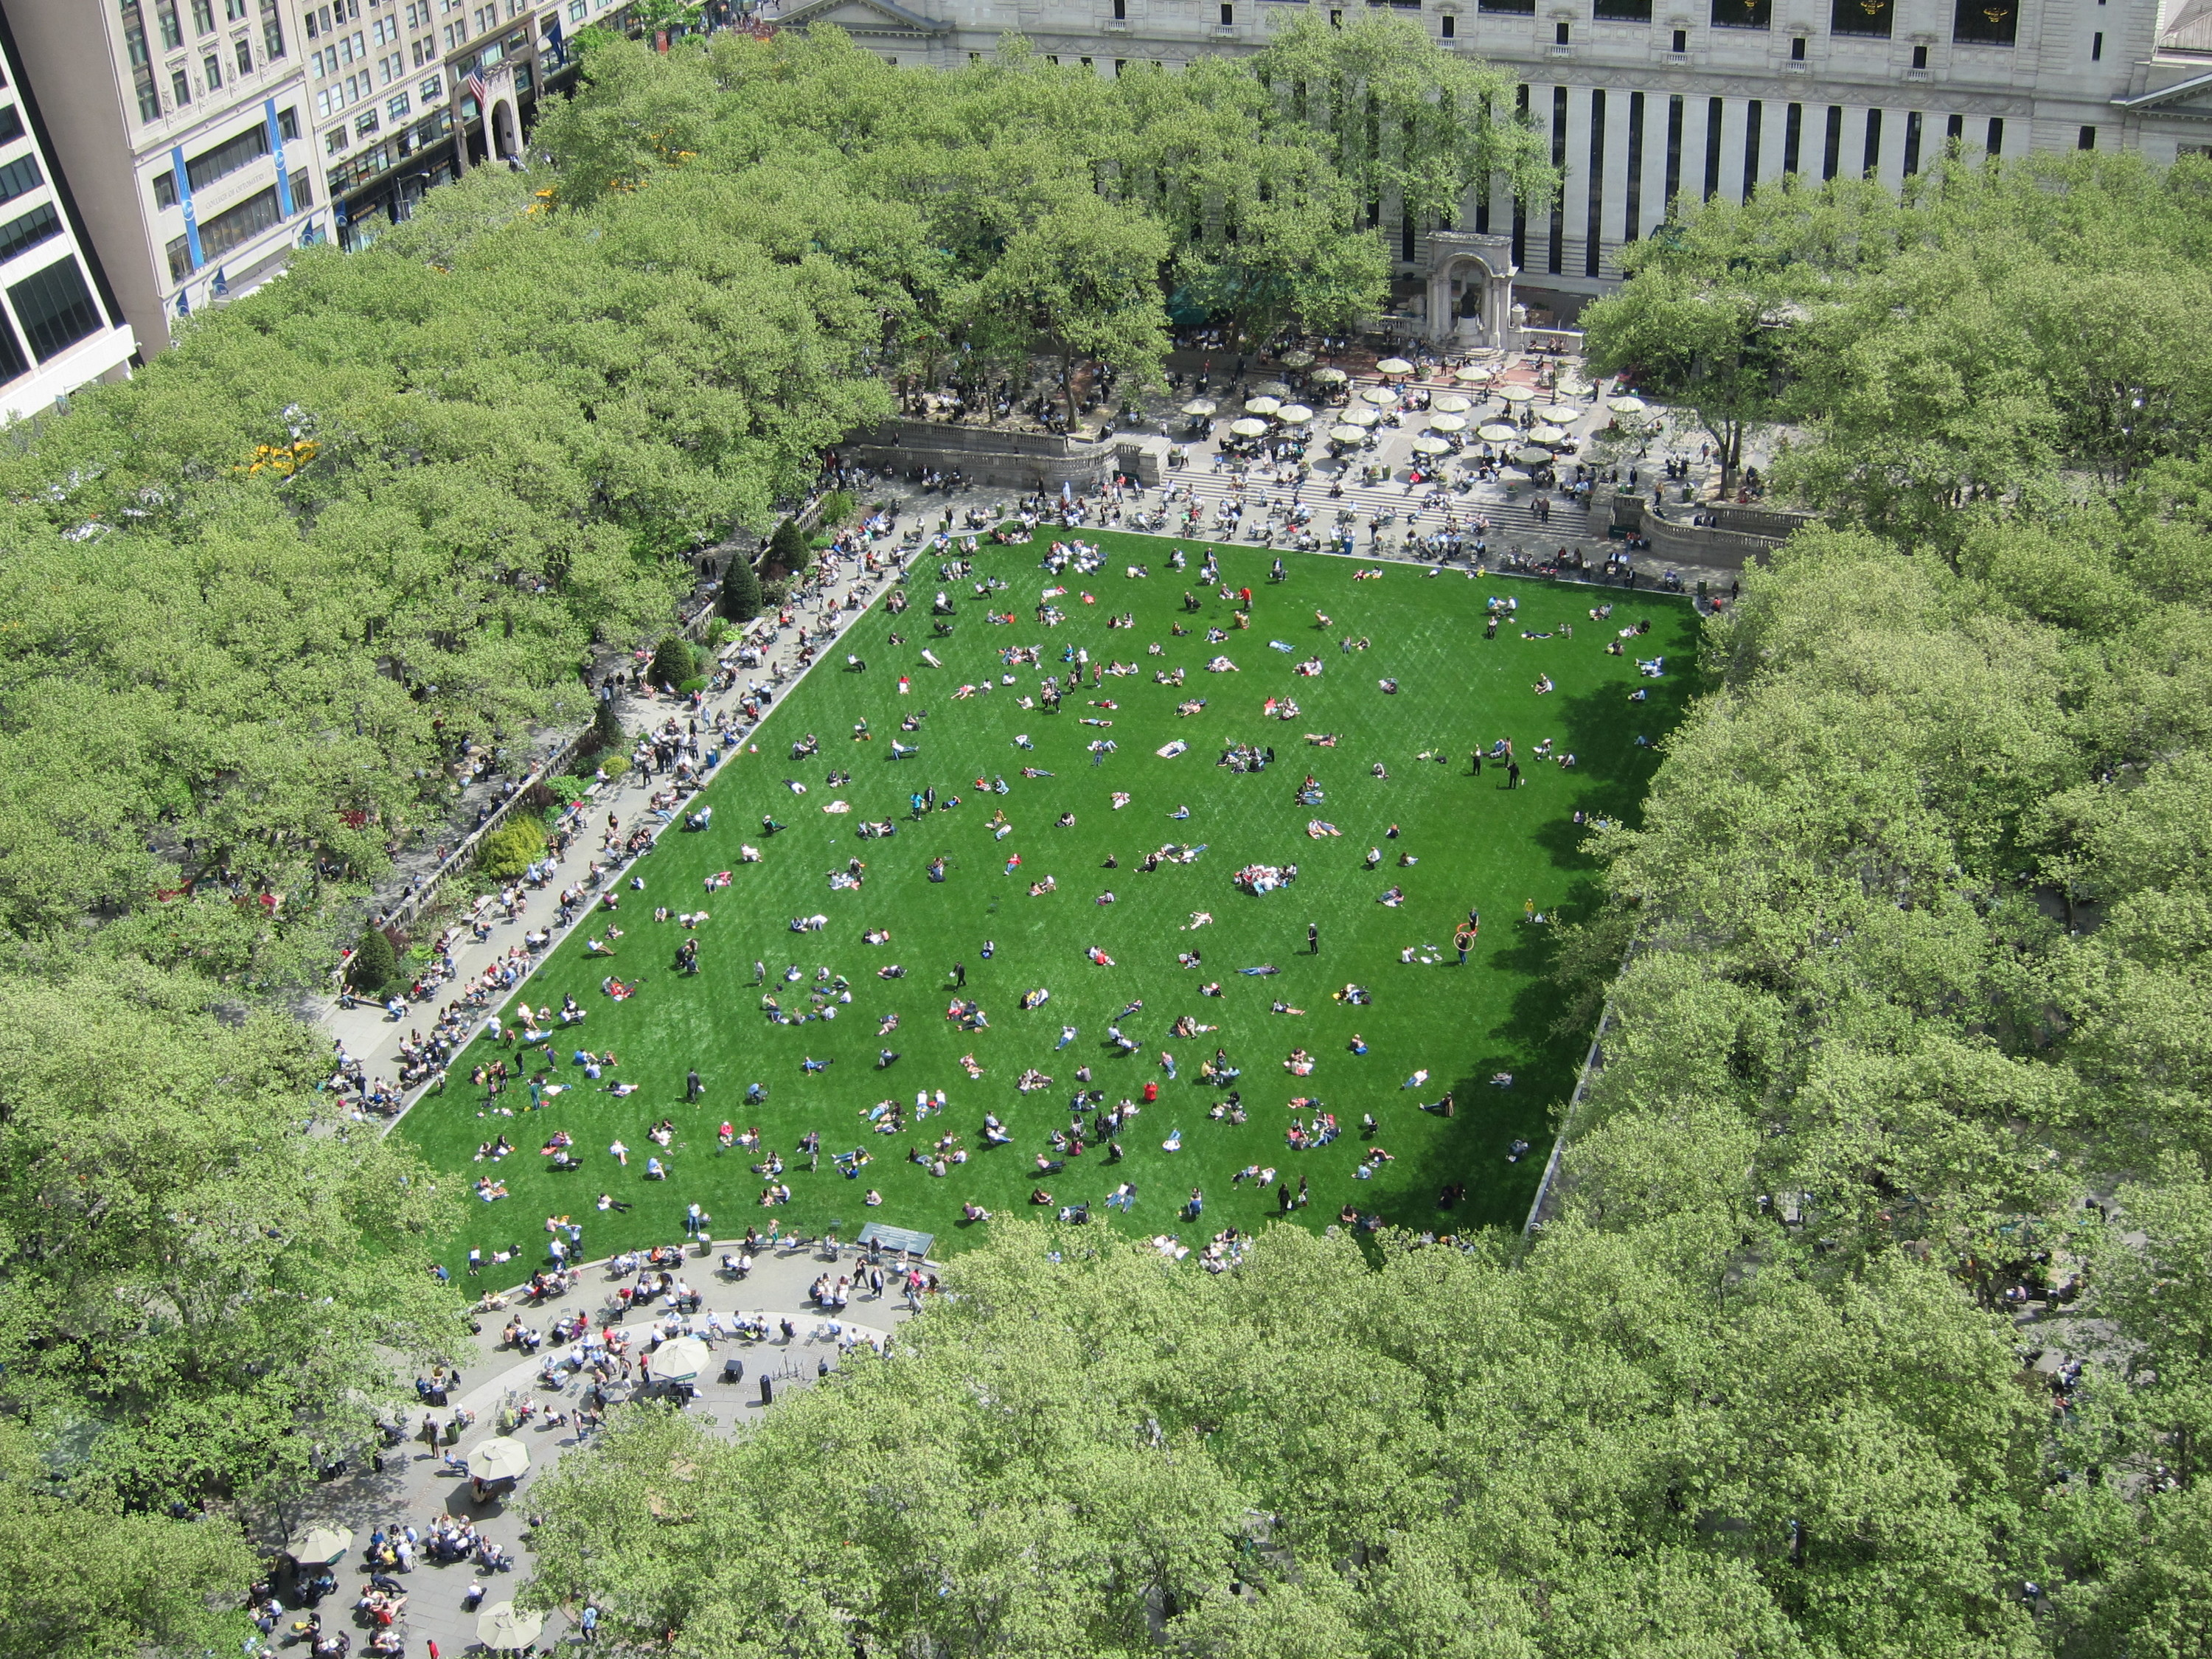 Bryant Park is throwing an all-you-can-eat ice cream party in June